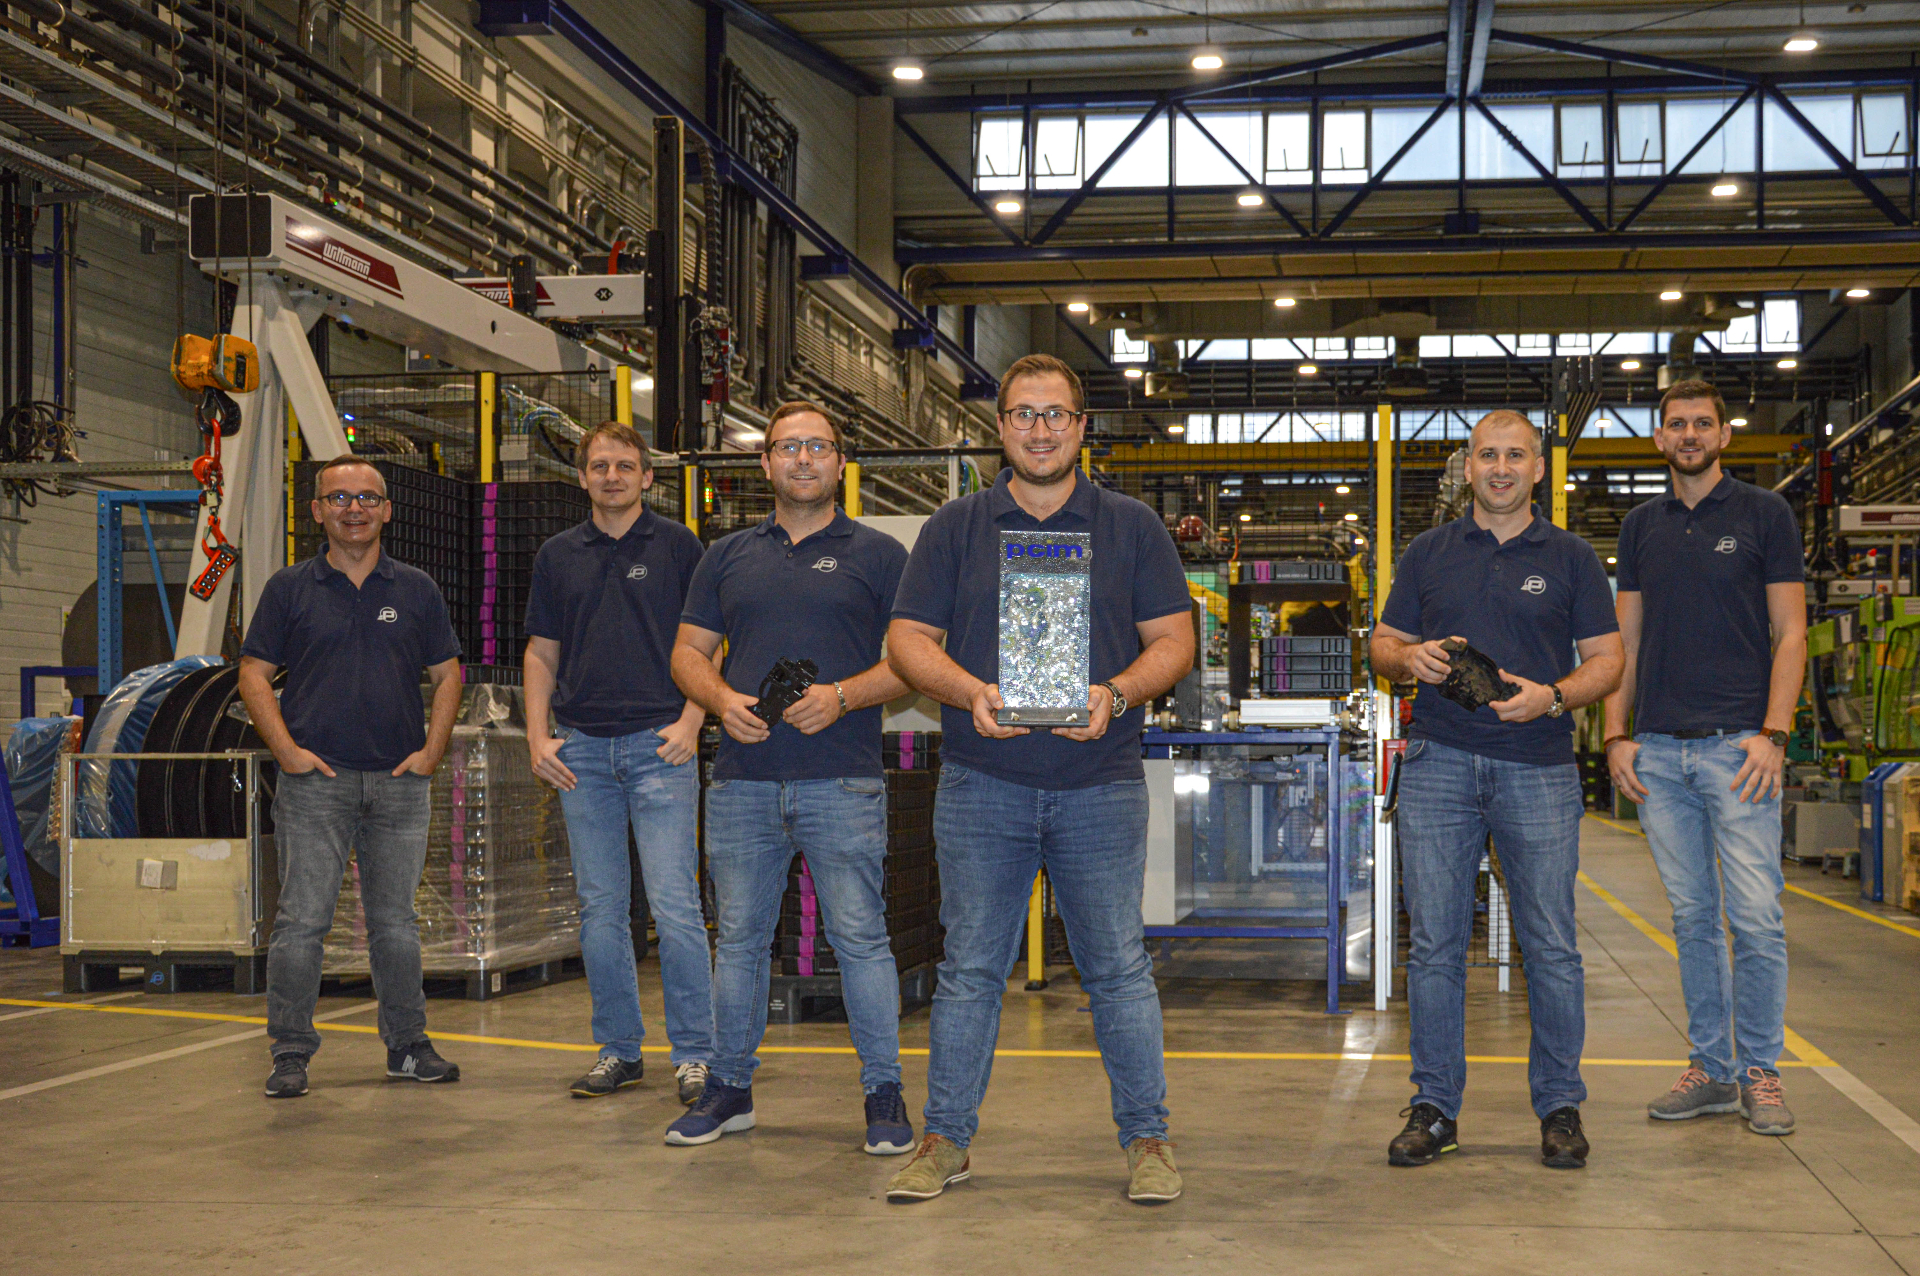 Projektteam Global Latch 3 mit dem Kiekert Award